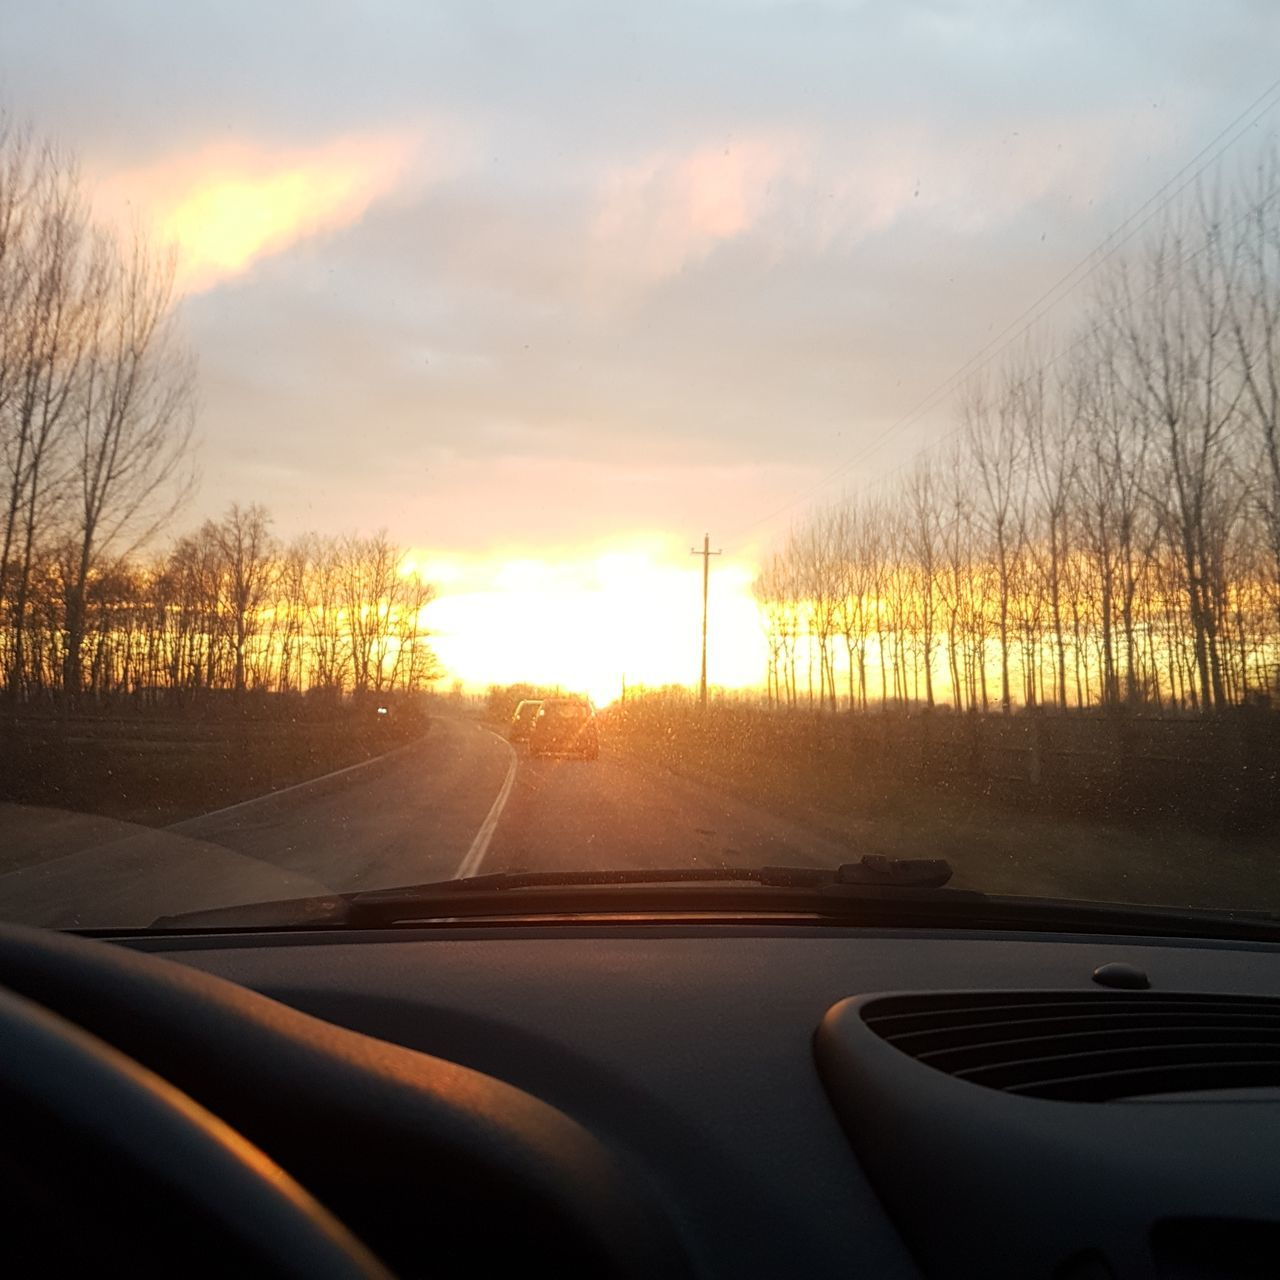 car, car interior, vehicle interior, land vehicle, transportation, sunset, windshield, mode of transport, car point of view, sky, dashboard, no people, cloud - sky, nature, windscreen, bare tree, tree, the way forward, road trip, road, beauty in nature, scenics, day, outdoors